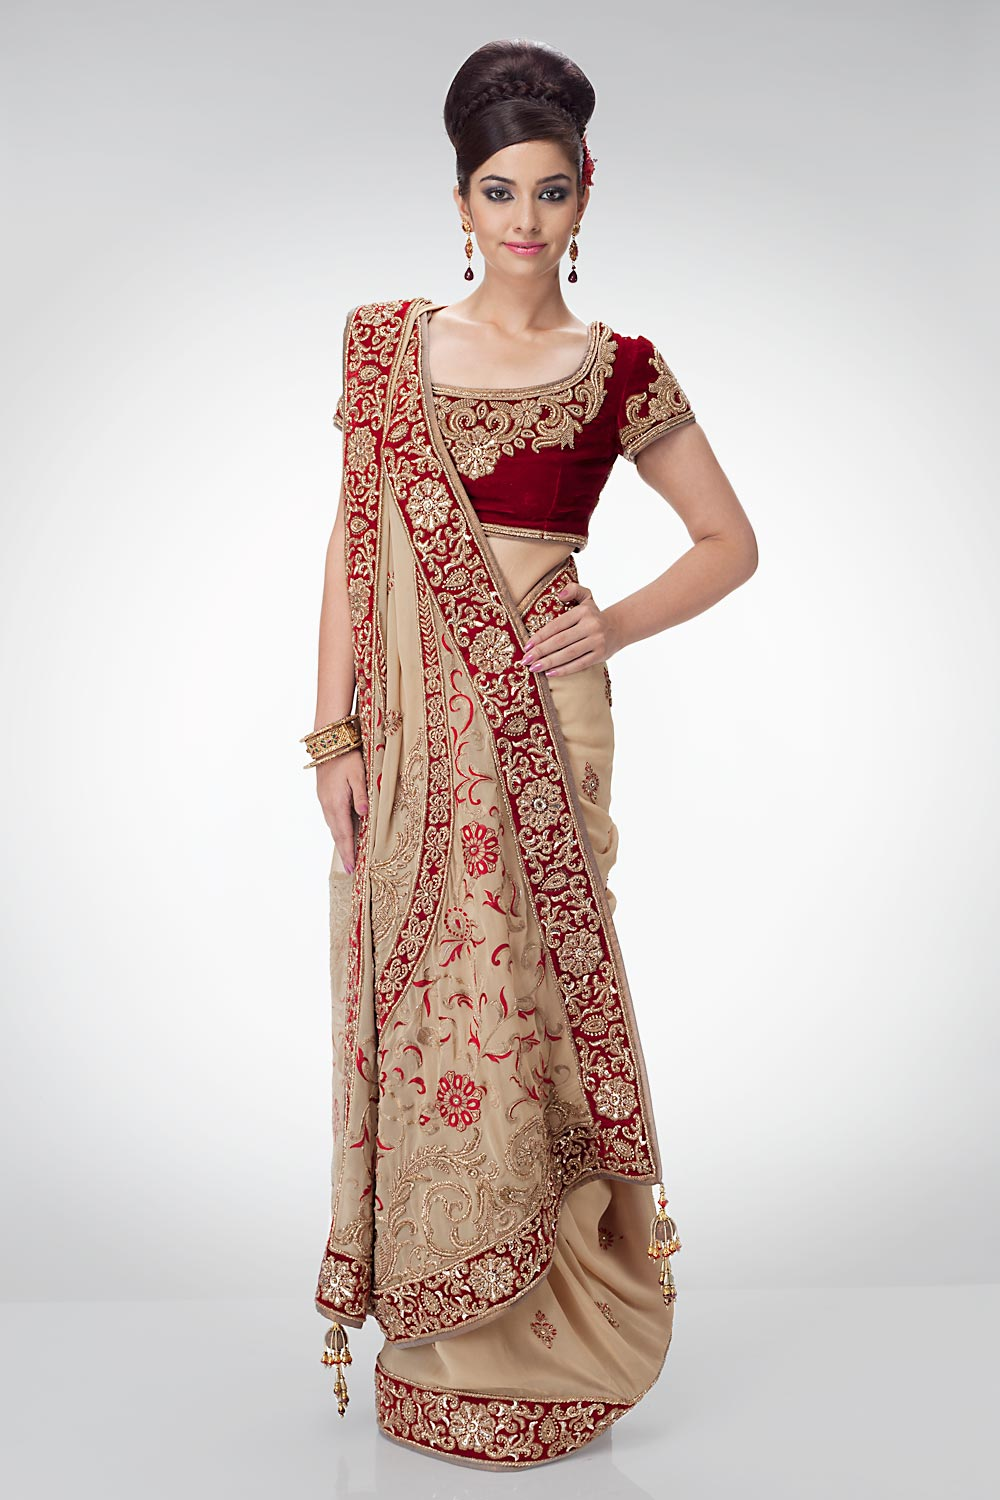 Bridal Sarees Indian Bridal Sarees Bridal Sarees For Parties Bridal Party Wear Sarees Fashion